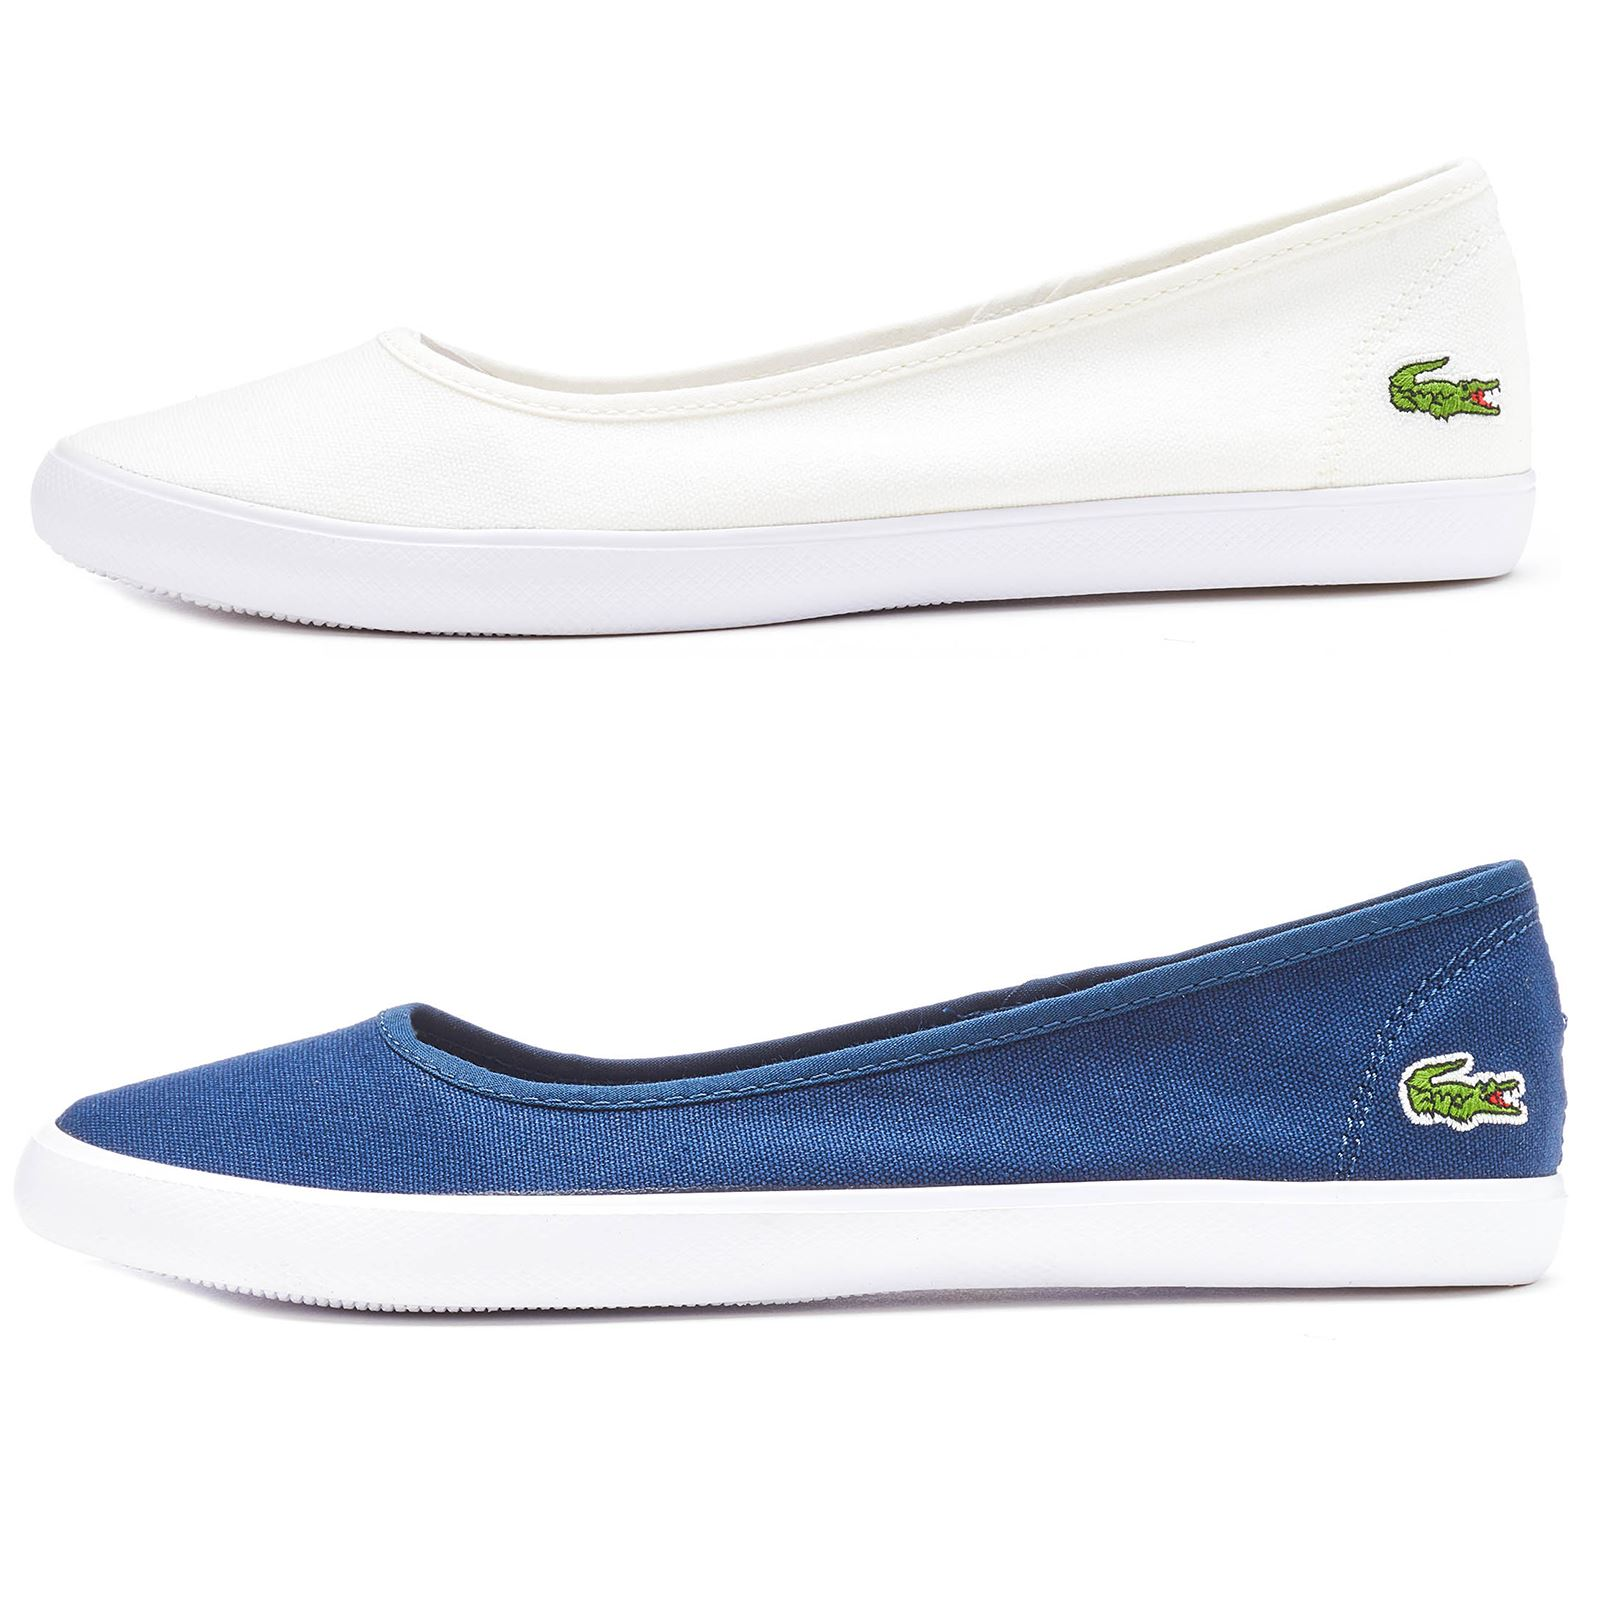 b8a68bda62ea40 Lacoste Marthe BL 1 SPW Slip Ons Women Trainers in White   Navy Blue  732SPW0143